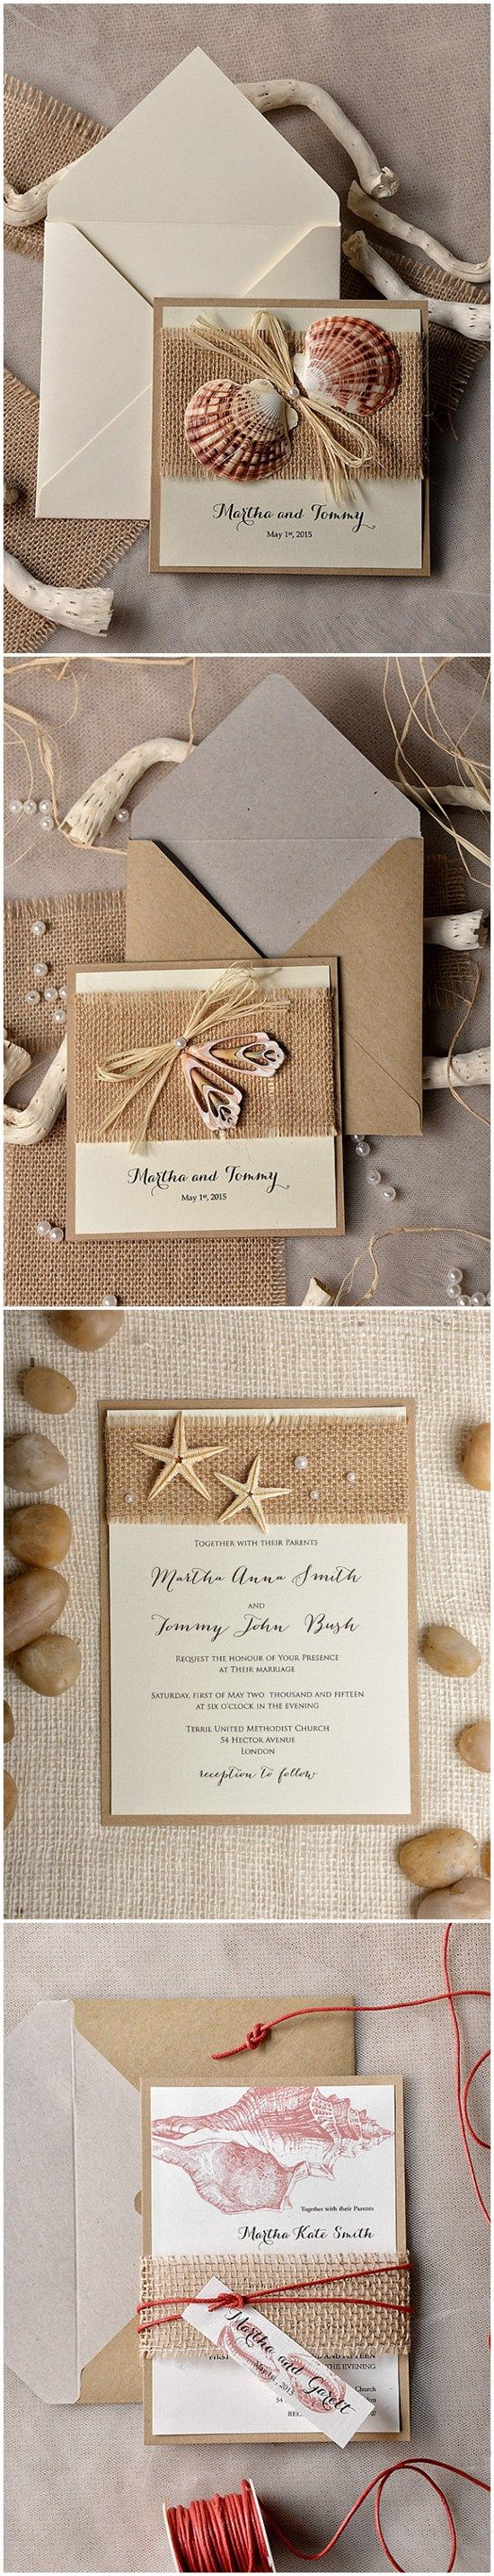 TOP 30 Chic Rustic Wedding Invitations from 4lovepolkadots ...